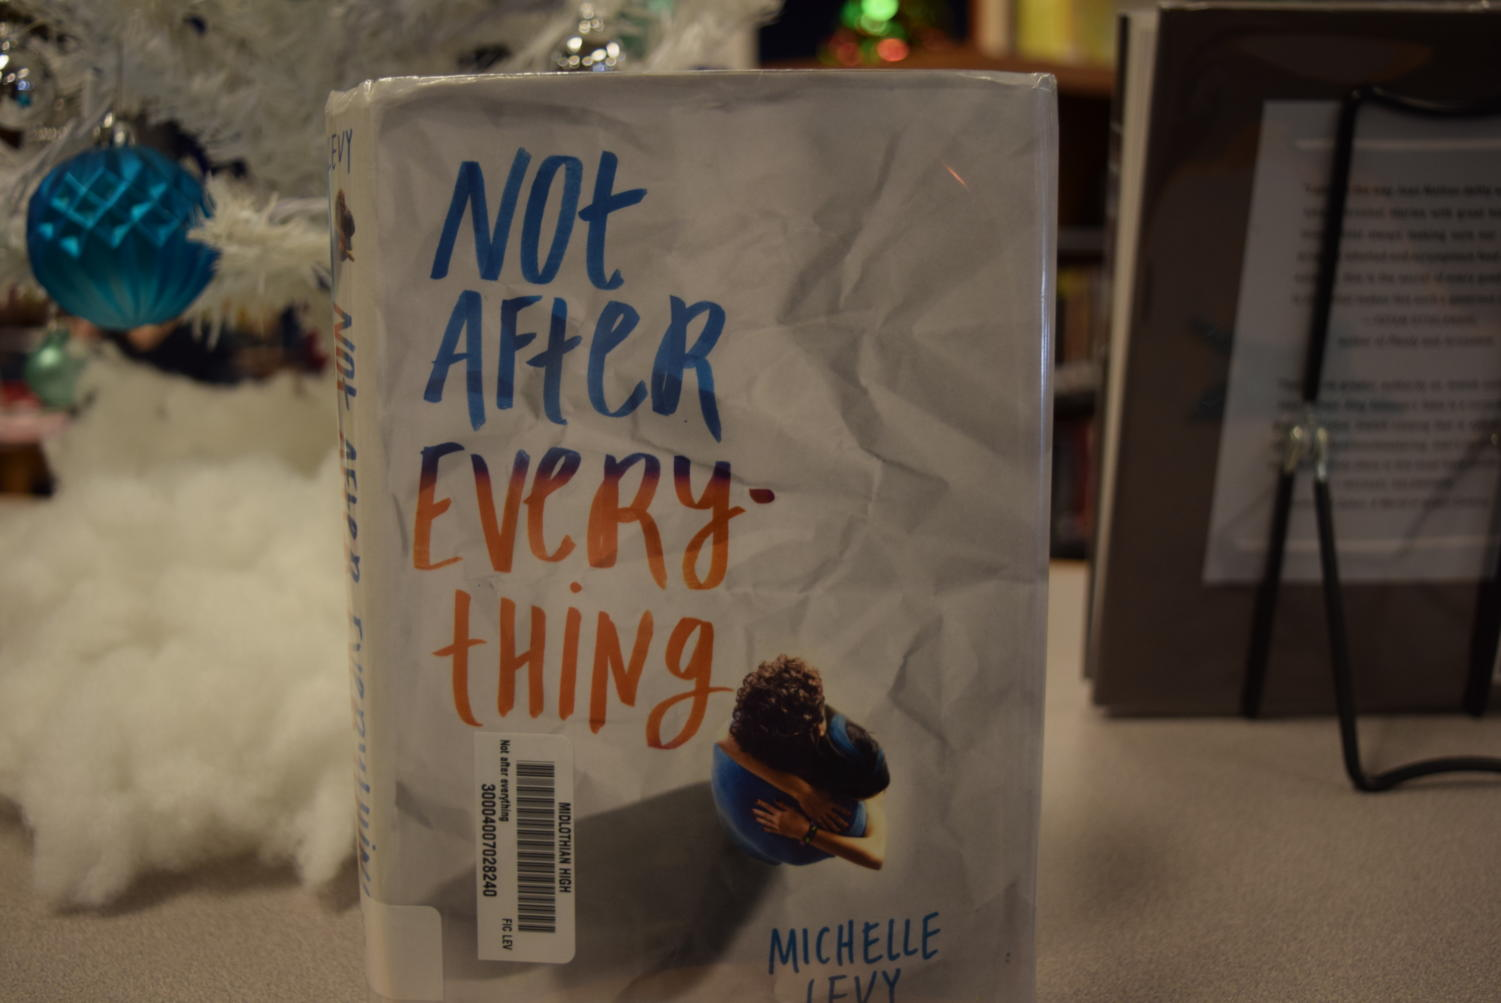 Not After Everything by Michelle Levy is an emotional novel that seeps into readers hearts.